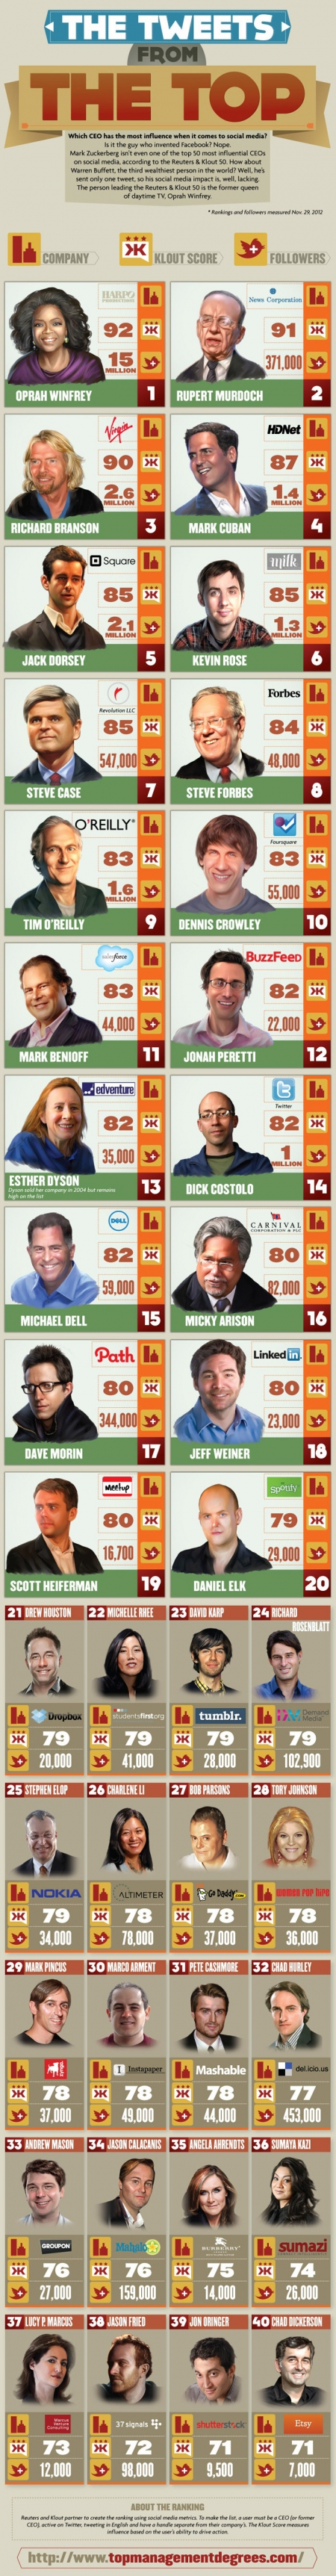 twitter use by ceos